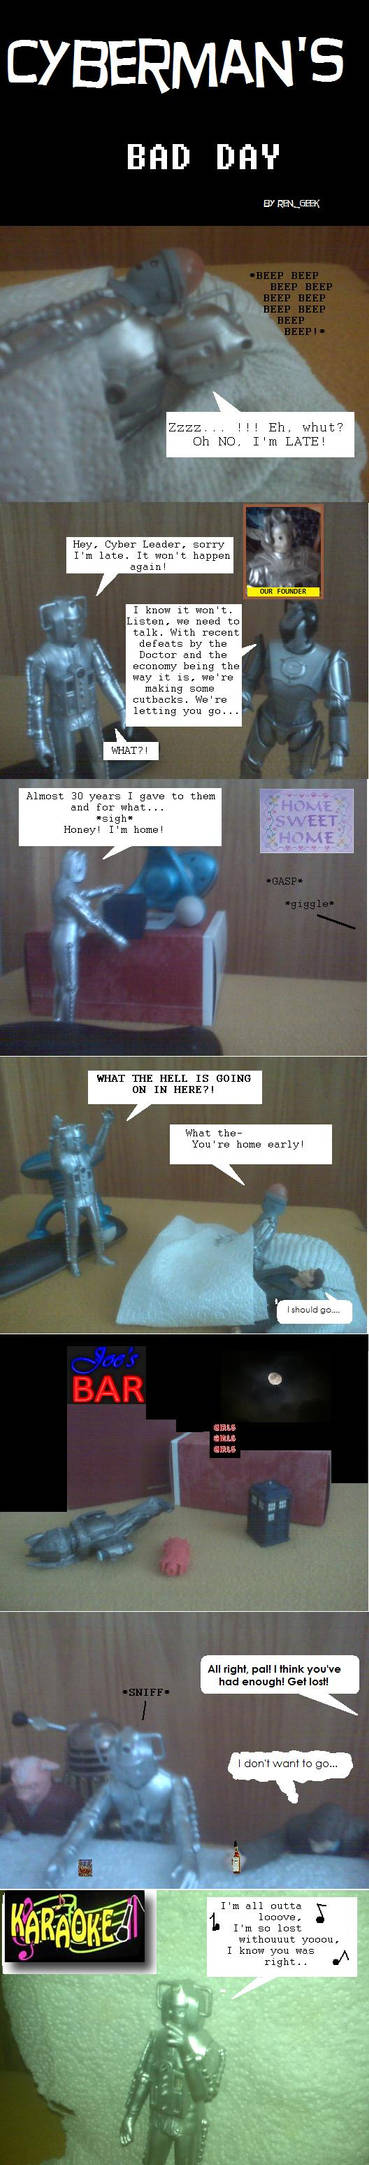 Cyberman's Bad Day